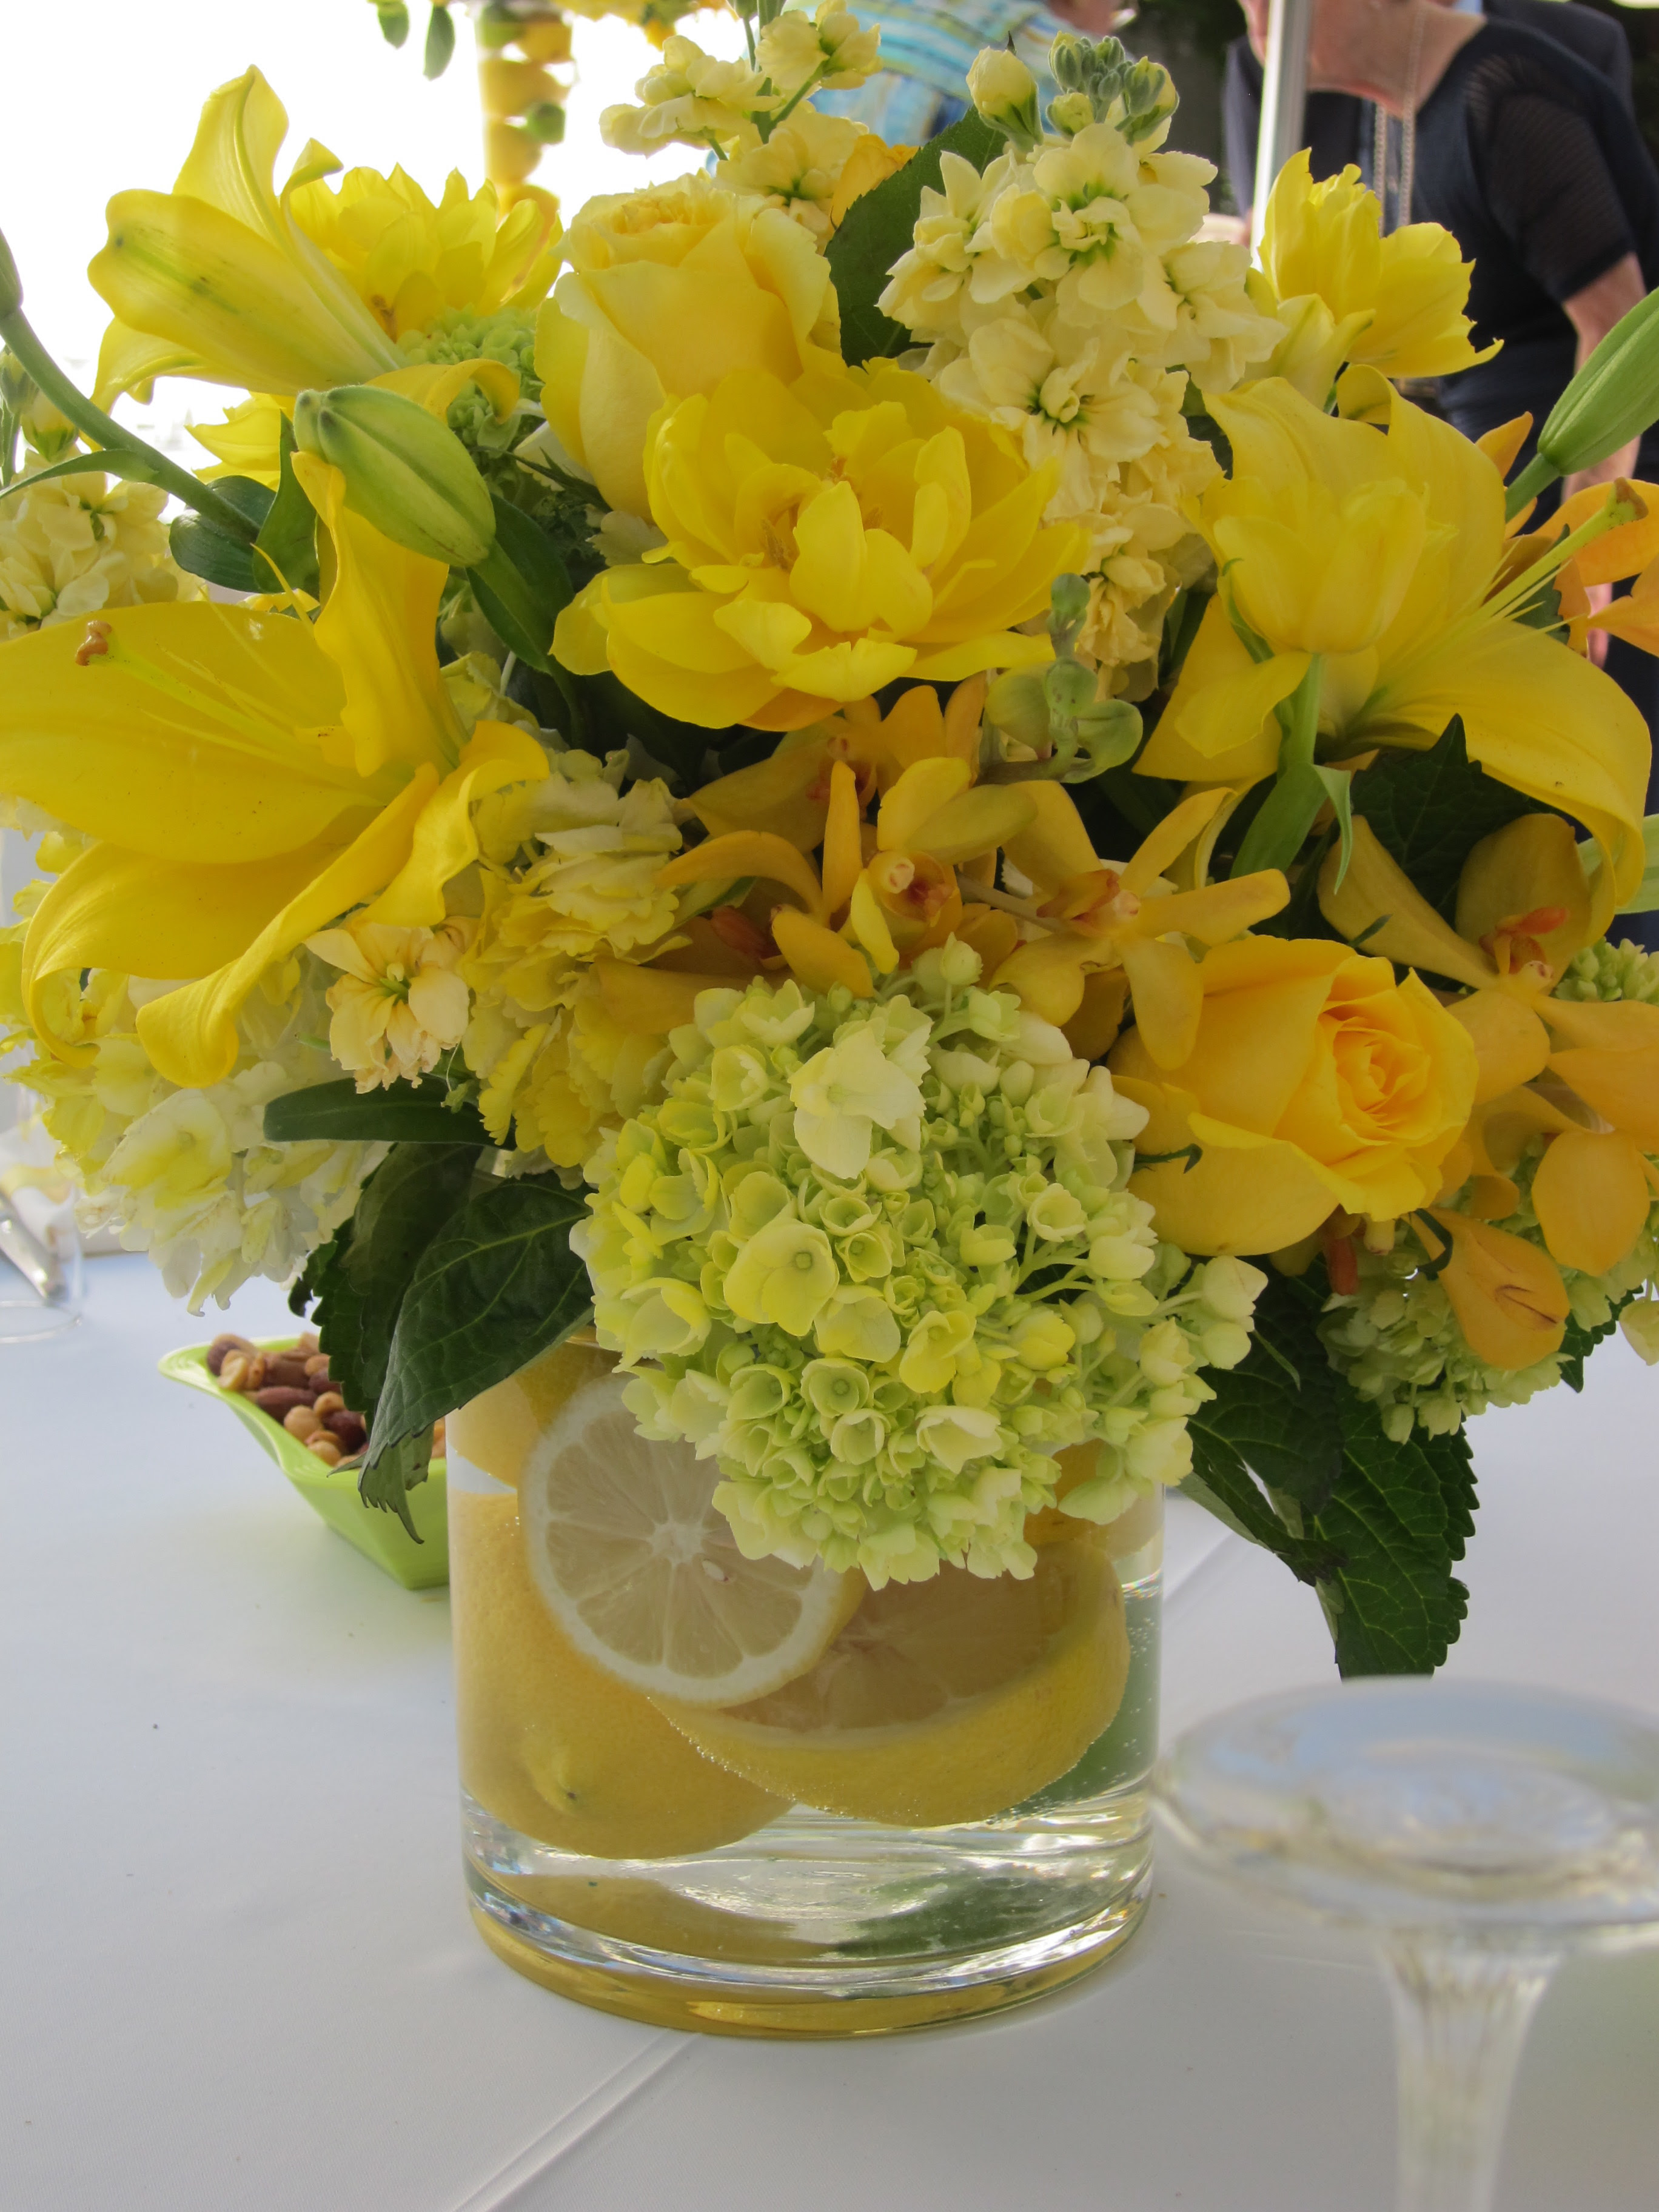 Elegant Yellow Flower Arrangements Images Top Collection Of Different Types Of Flowers In The Images Hd